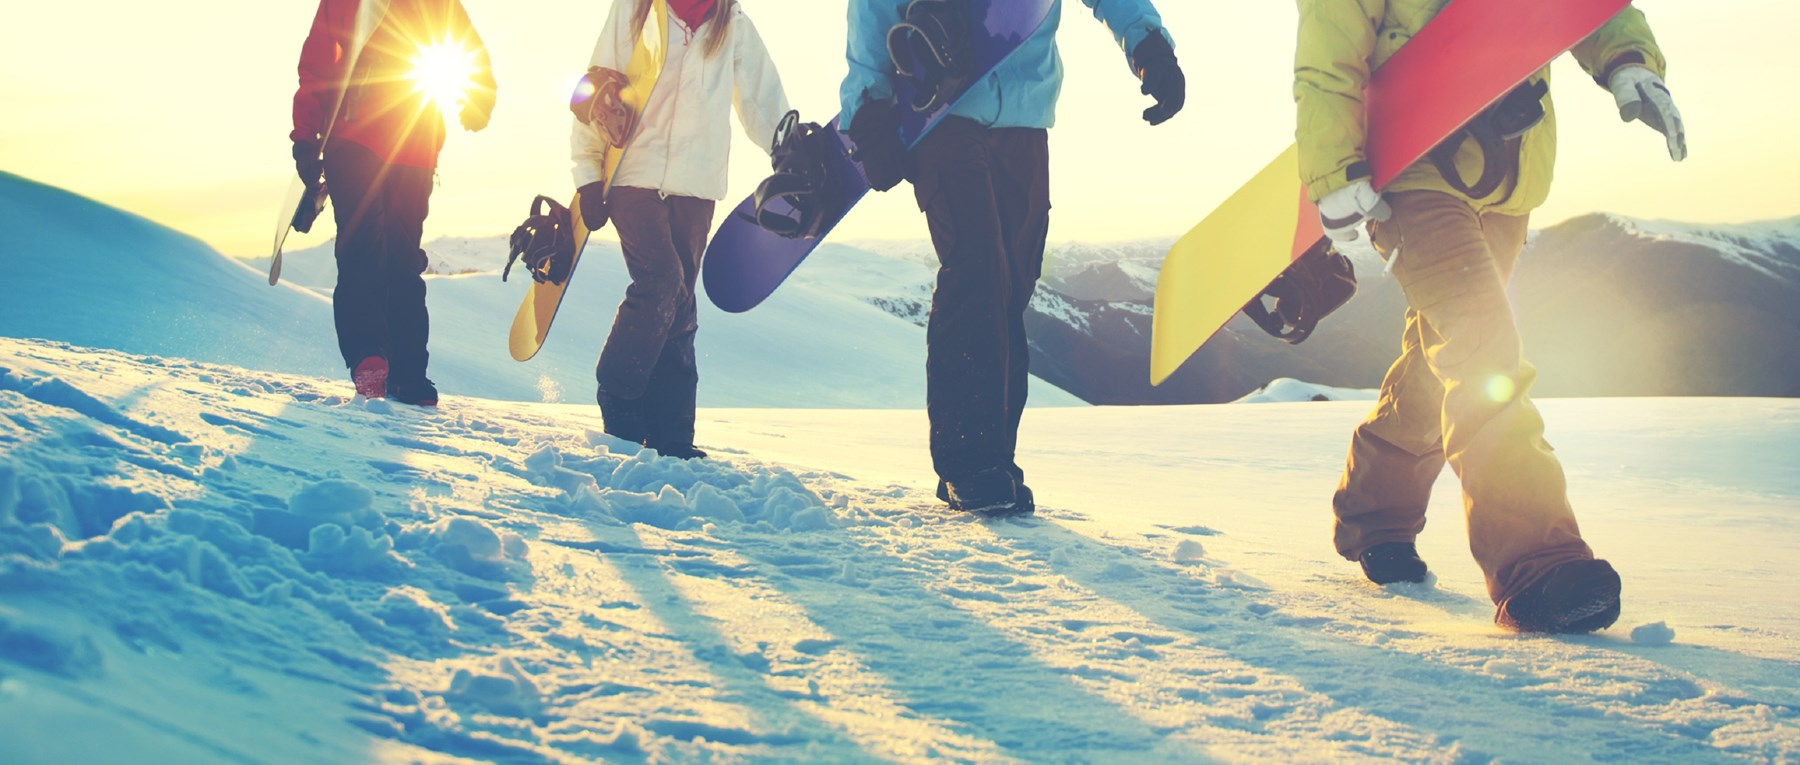 Snowboarders walking in the snow